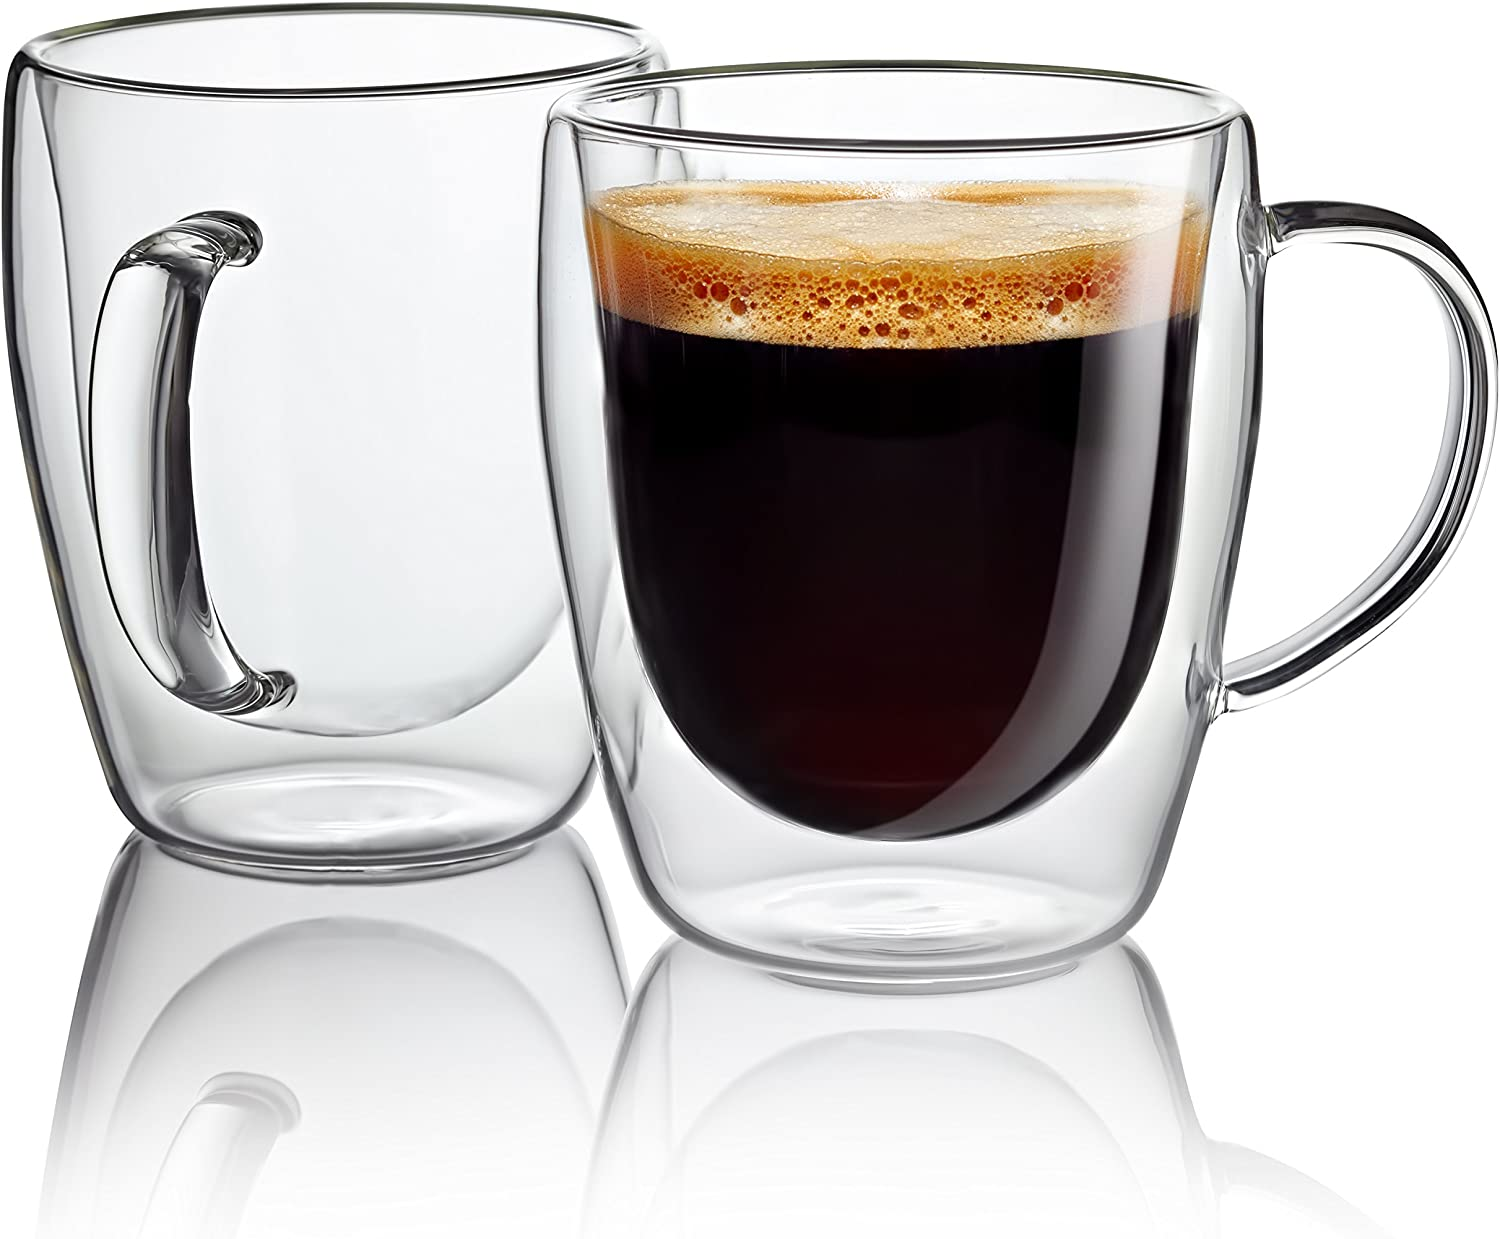 Glass coffee cup 300 ML double walled glass mugs espresso coffee cups. Dishwasher. Microwave, freezer with NO RISK Gift set of 2 Hand Blown